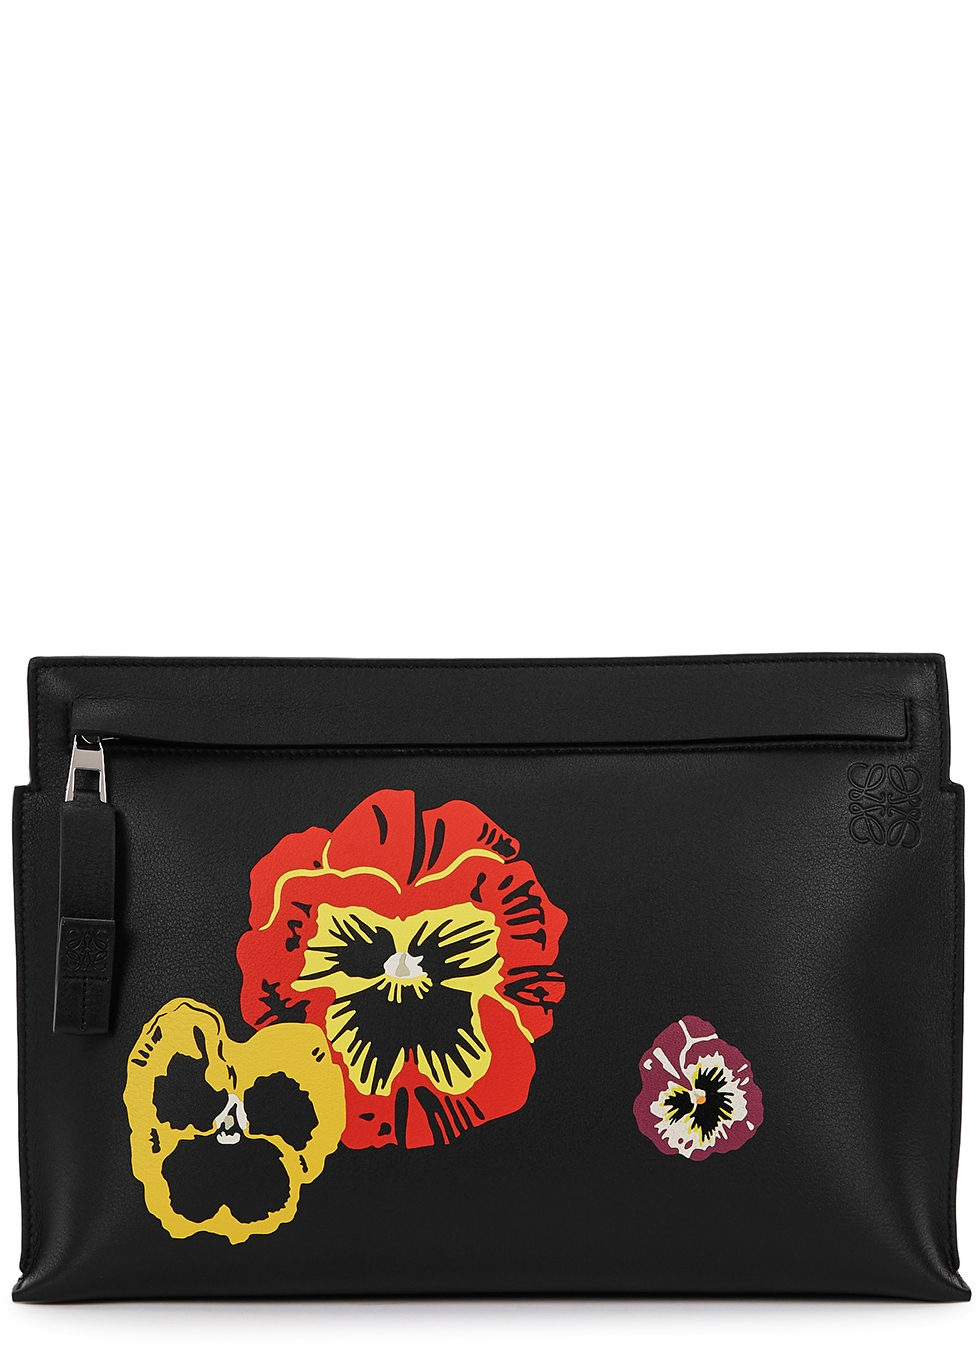 Pansies T black leather pouch